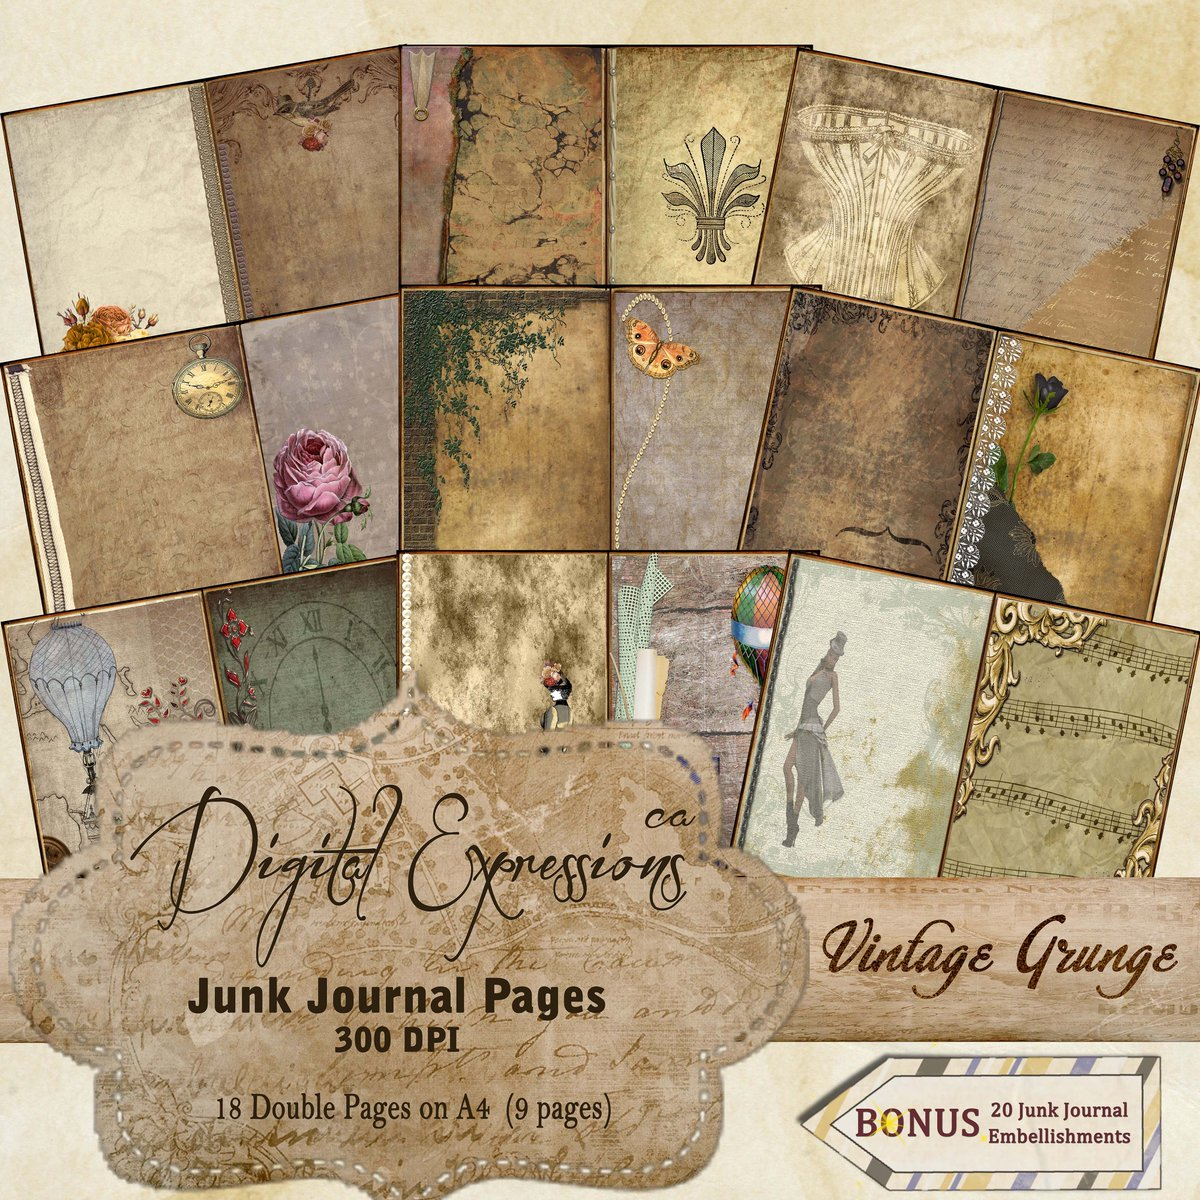 My #ETSY Shop http://ow.ly/APTt50vsZ9V  #JunkJournal #planner #ErinCondren #stickers #printable #scrapbooking #Digital #Paper packs #Bible #teacards #tags #Washitape #Steampunk -Trying to raise $25,000 for #Charity! Check for #Sale  50-60% off #Commercial Use TY for your supportpic.twitter.com/FE9zVCMuKZ